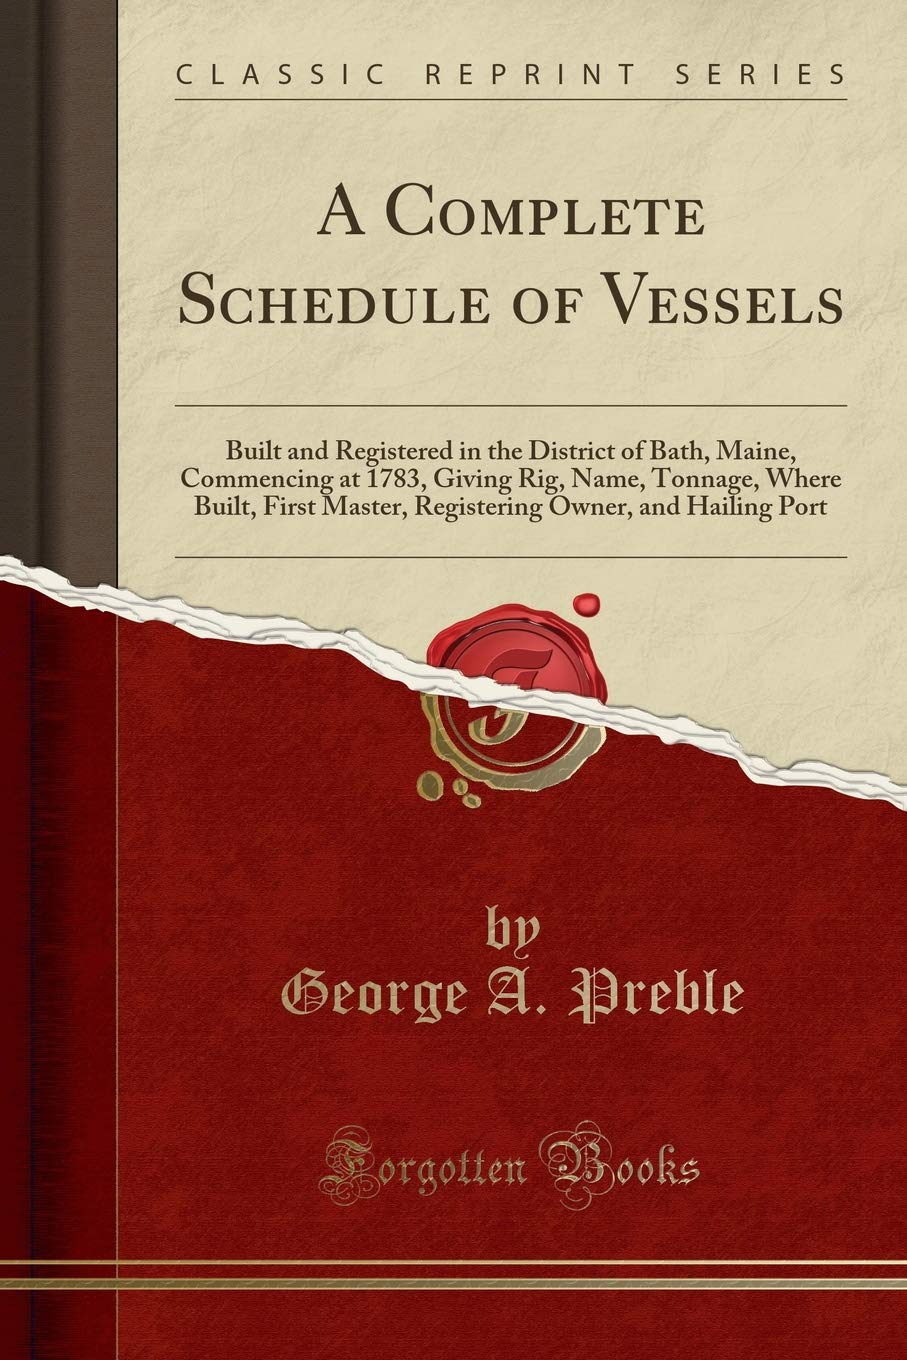 A Complete Schedule of Vessels: Built and Registered in the